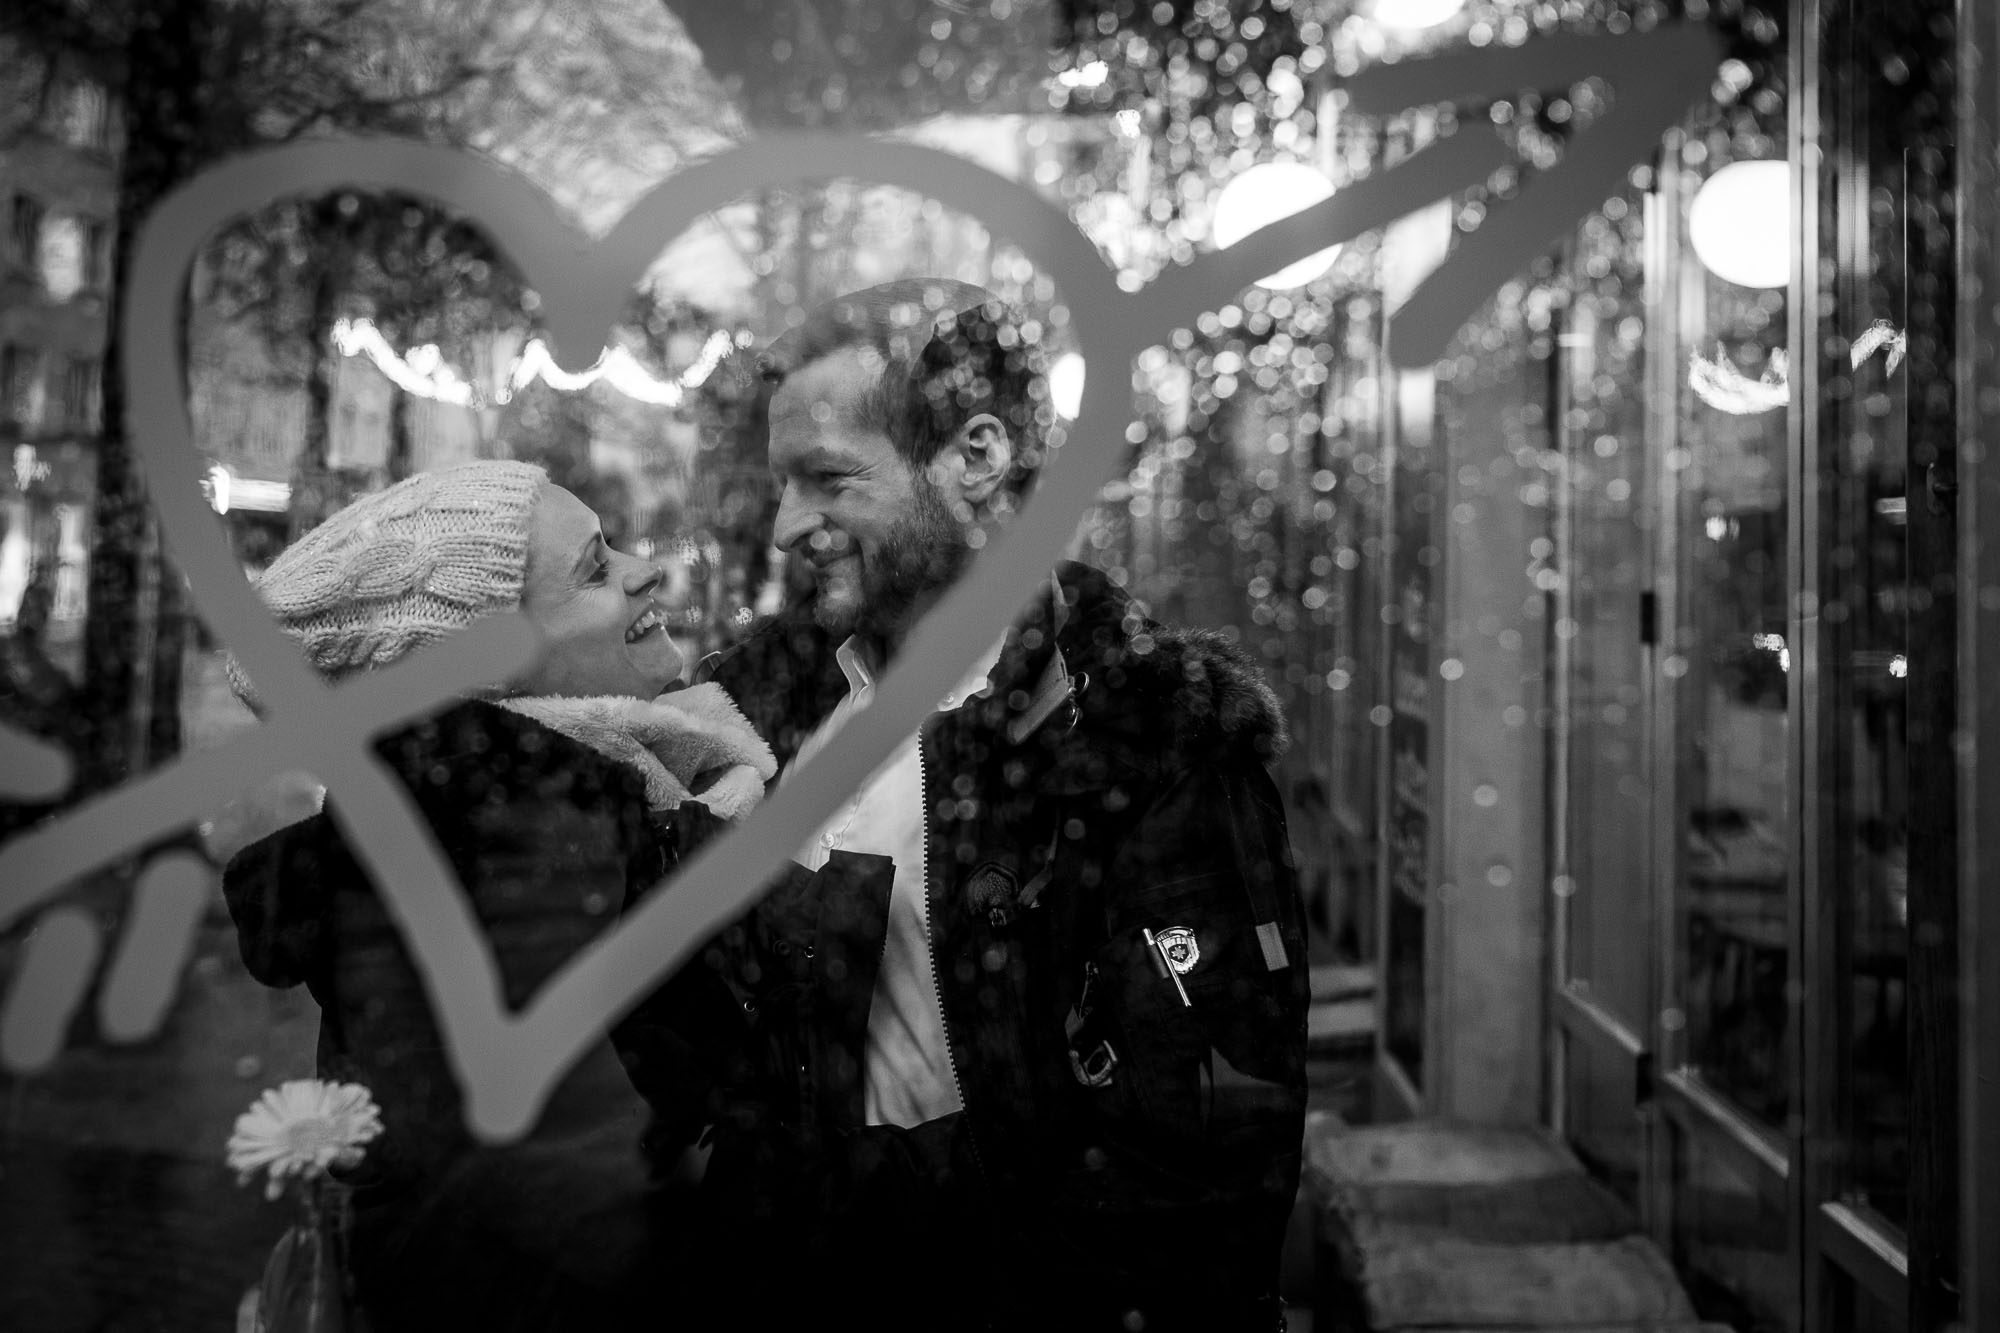 Couple about to kiss, behind a window coverd with raindrops